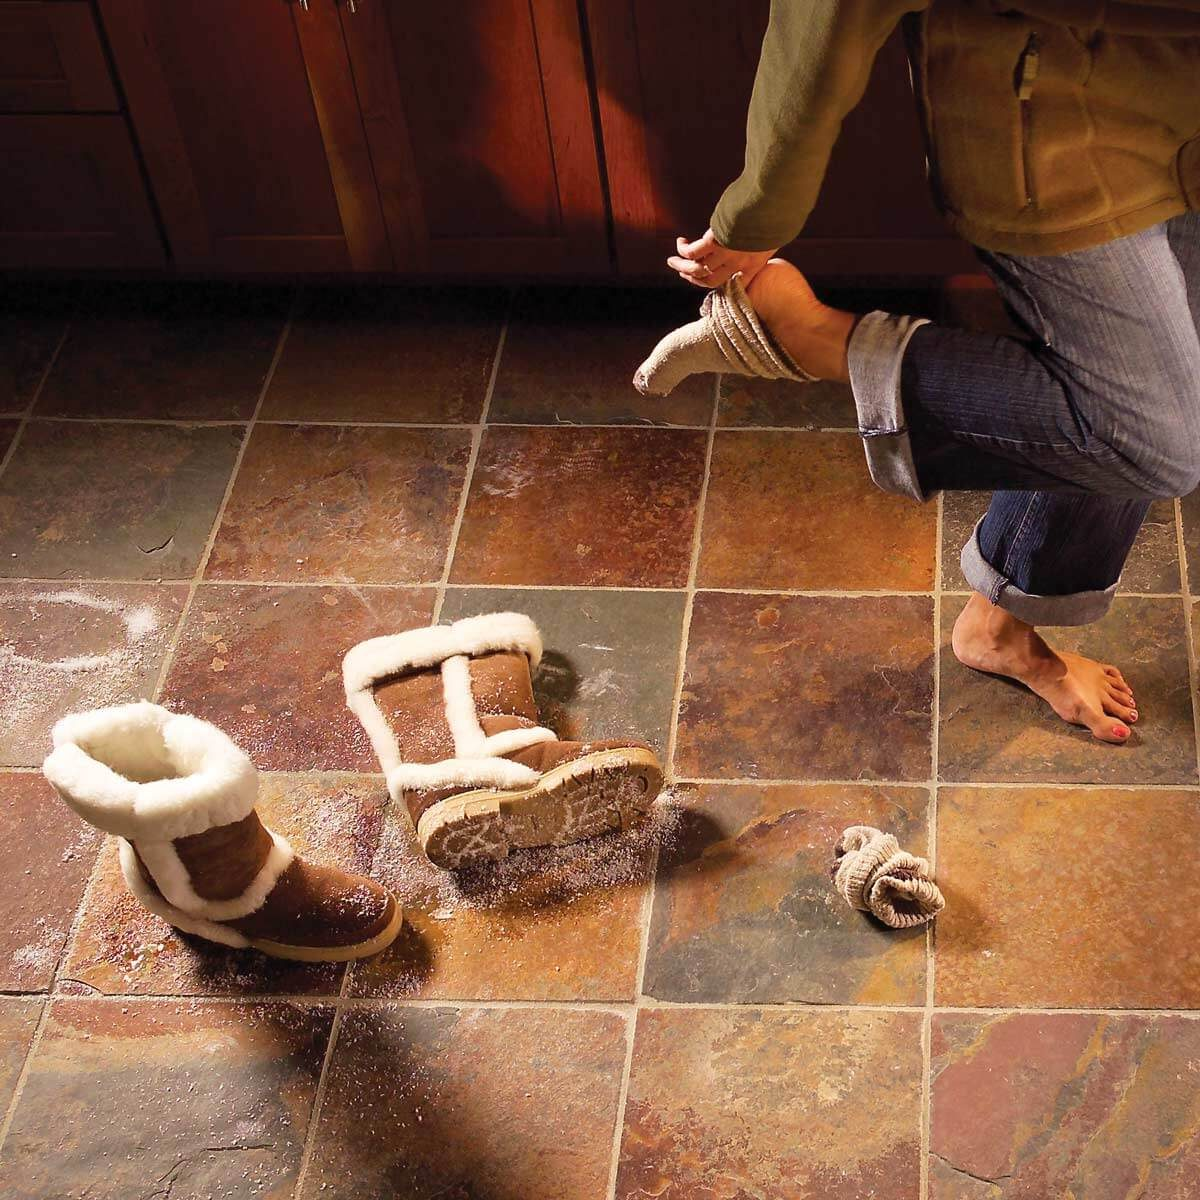 heated wiring diy to floor how tile install electrical and know floors skills step a tos